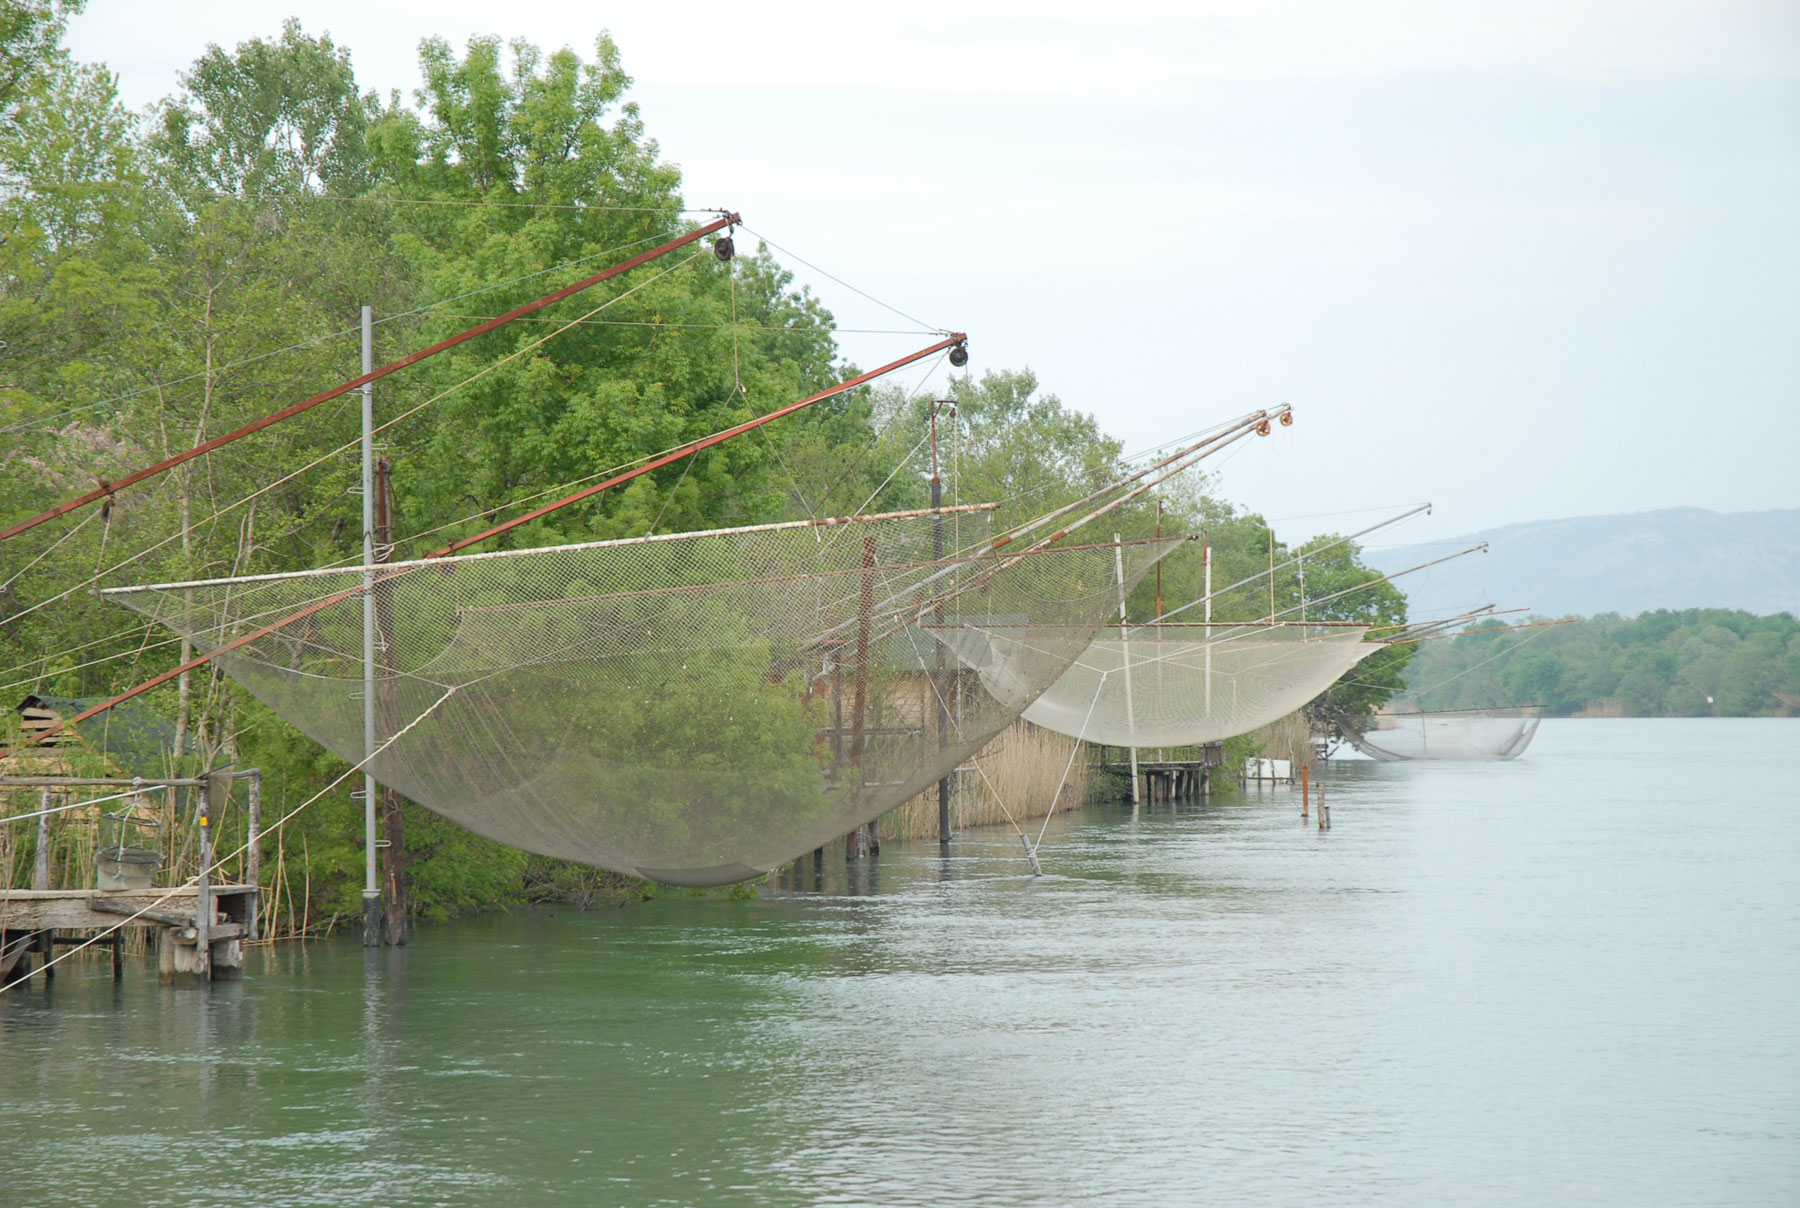 Fishing nets at Bojana